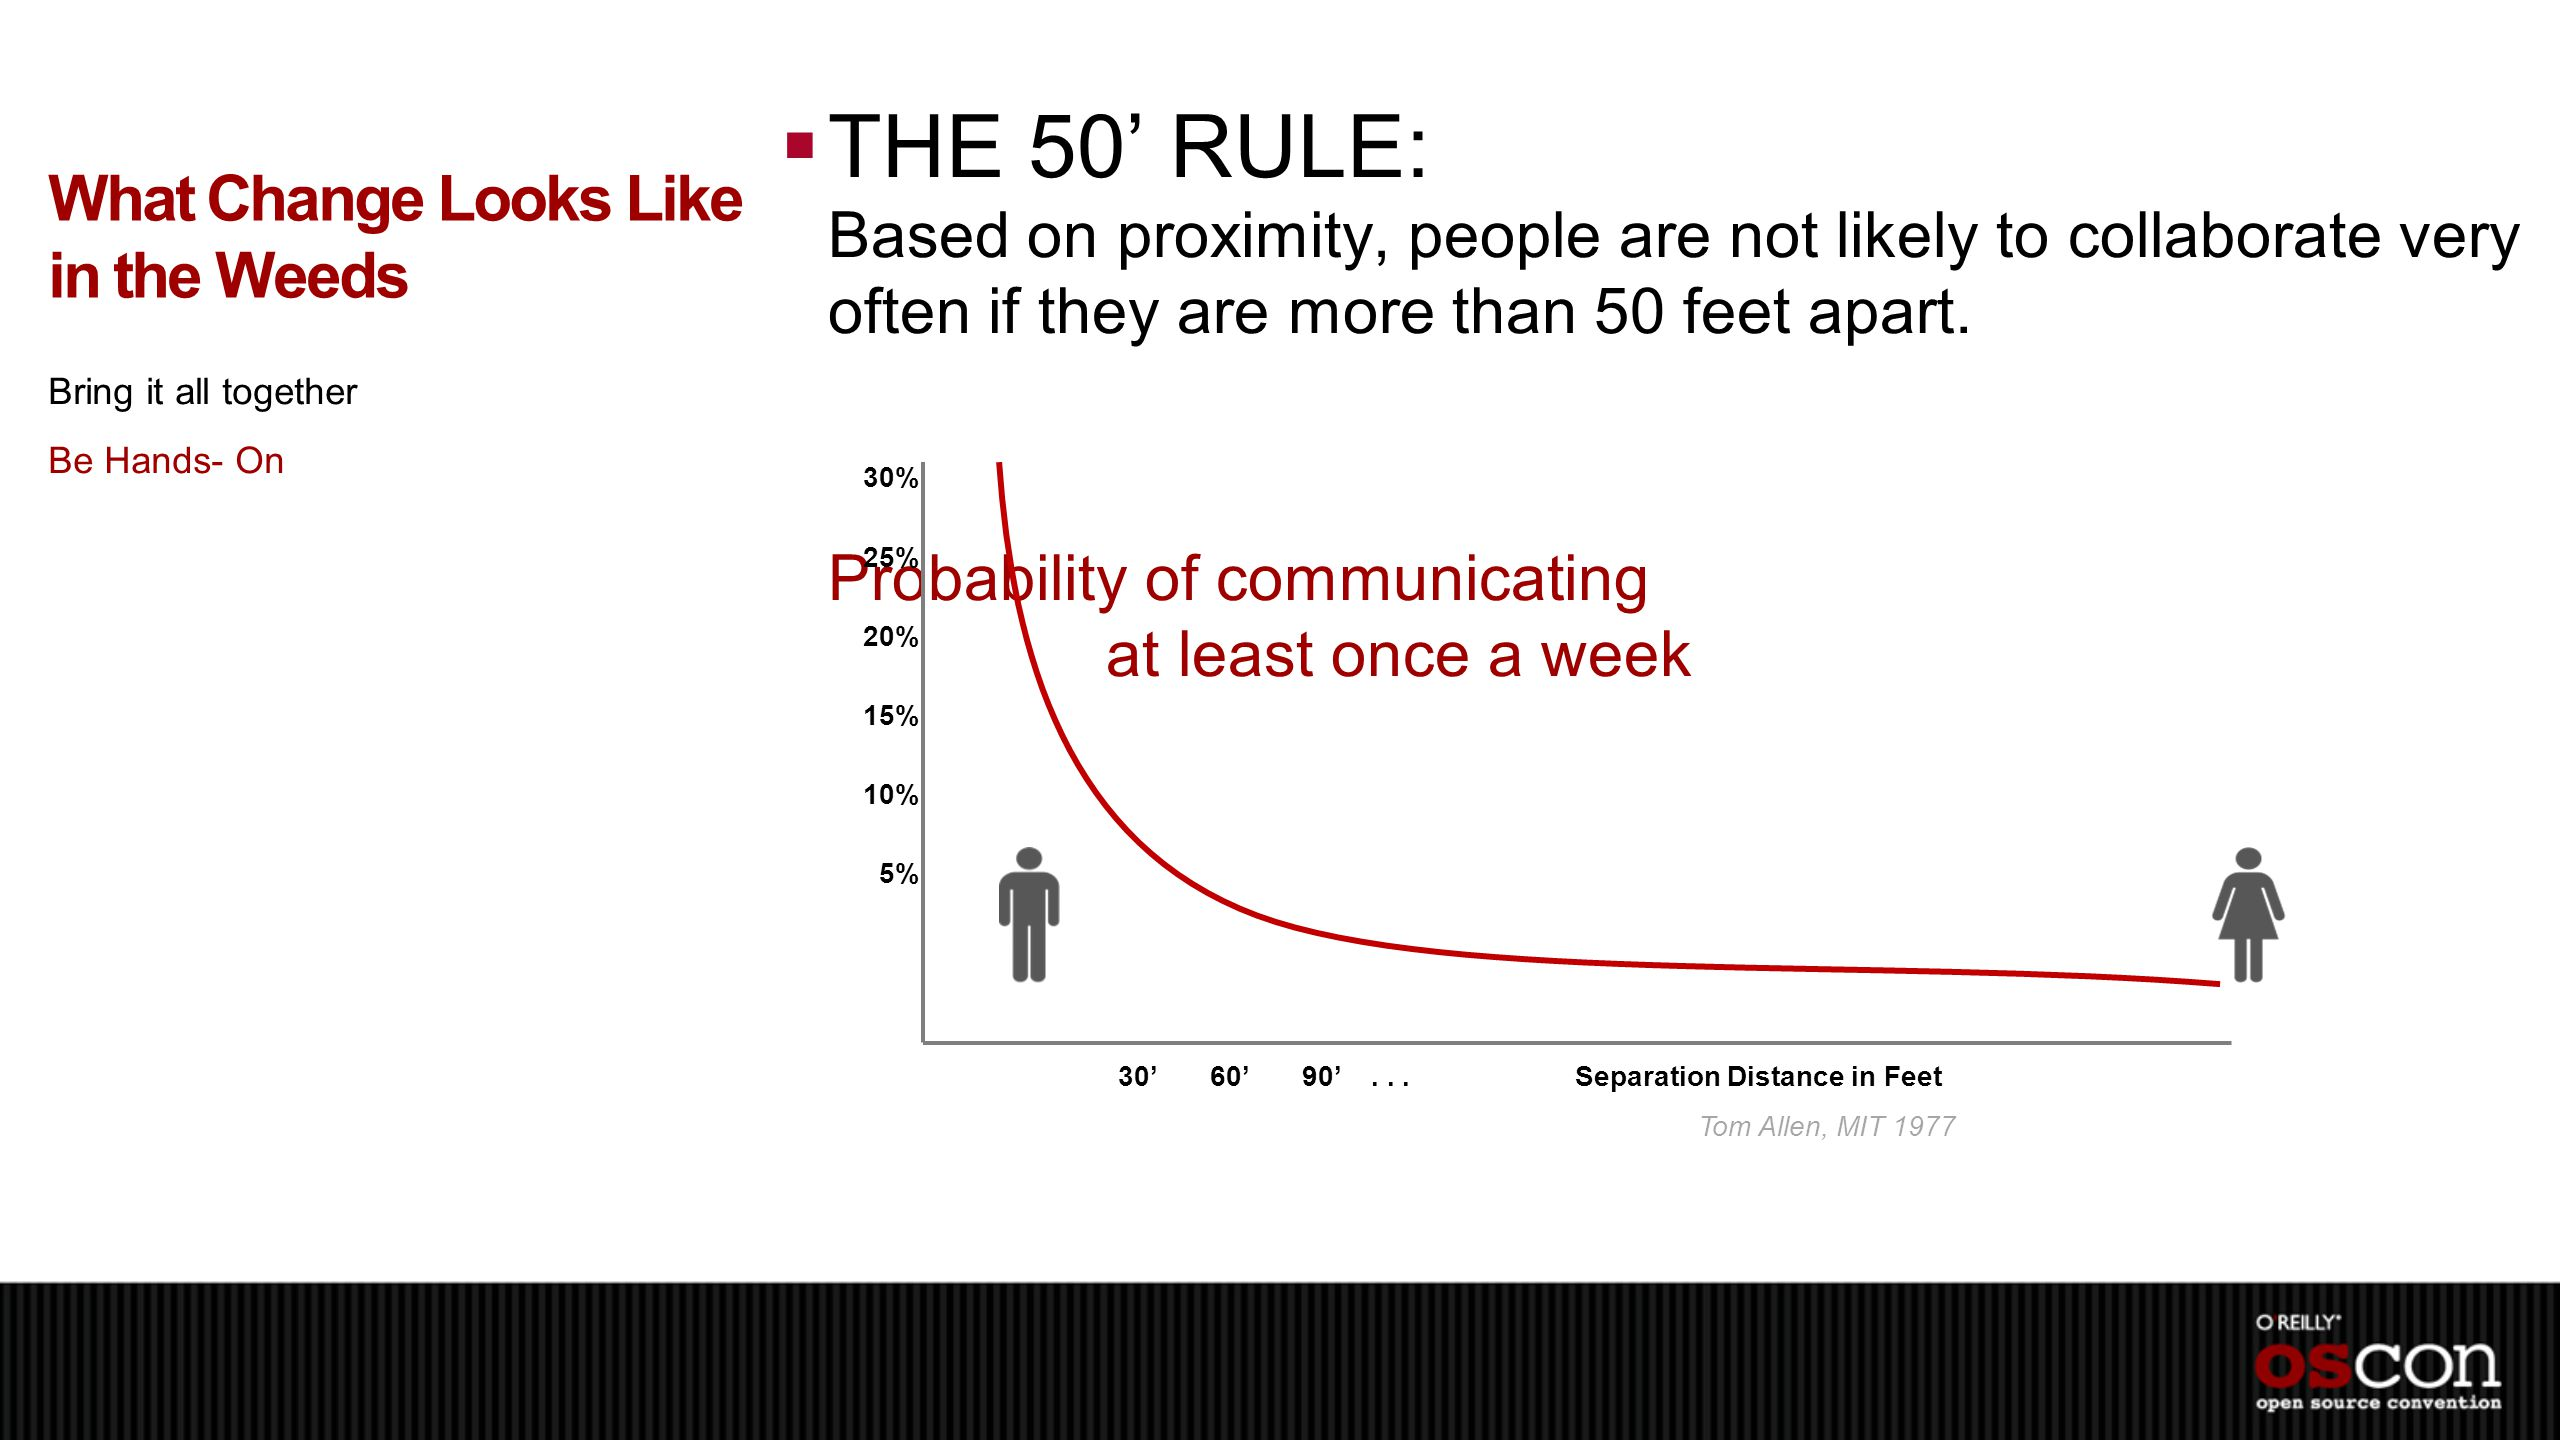  THE 50' RULE: Based on proximity, people are not likely to collaborate very often if they are more than 50 feet apart.